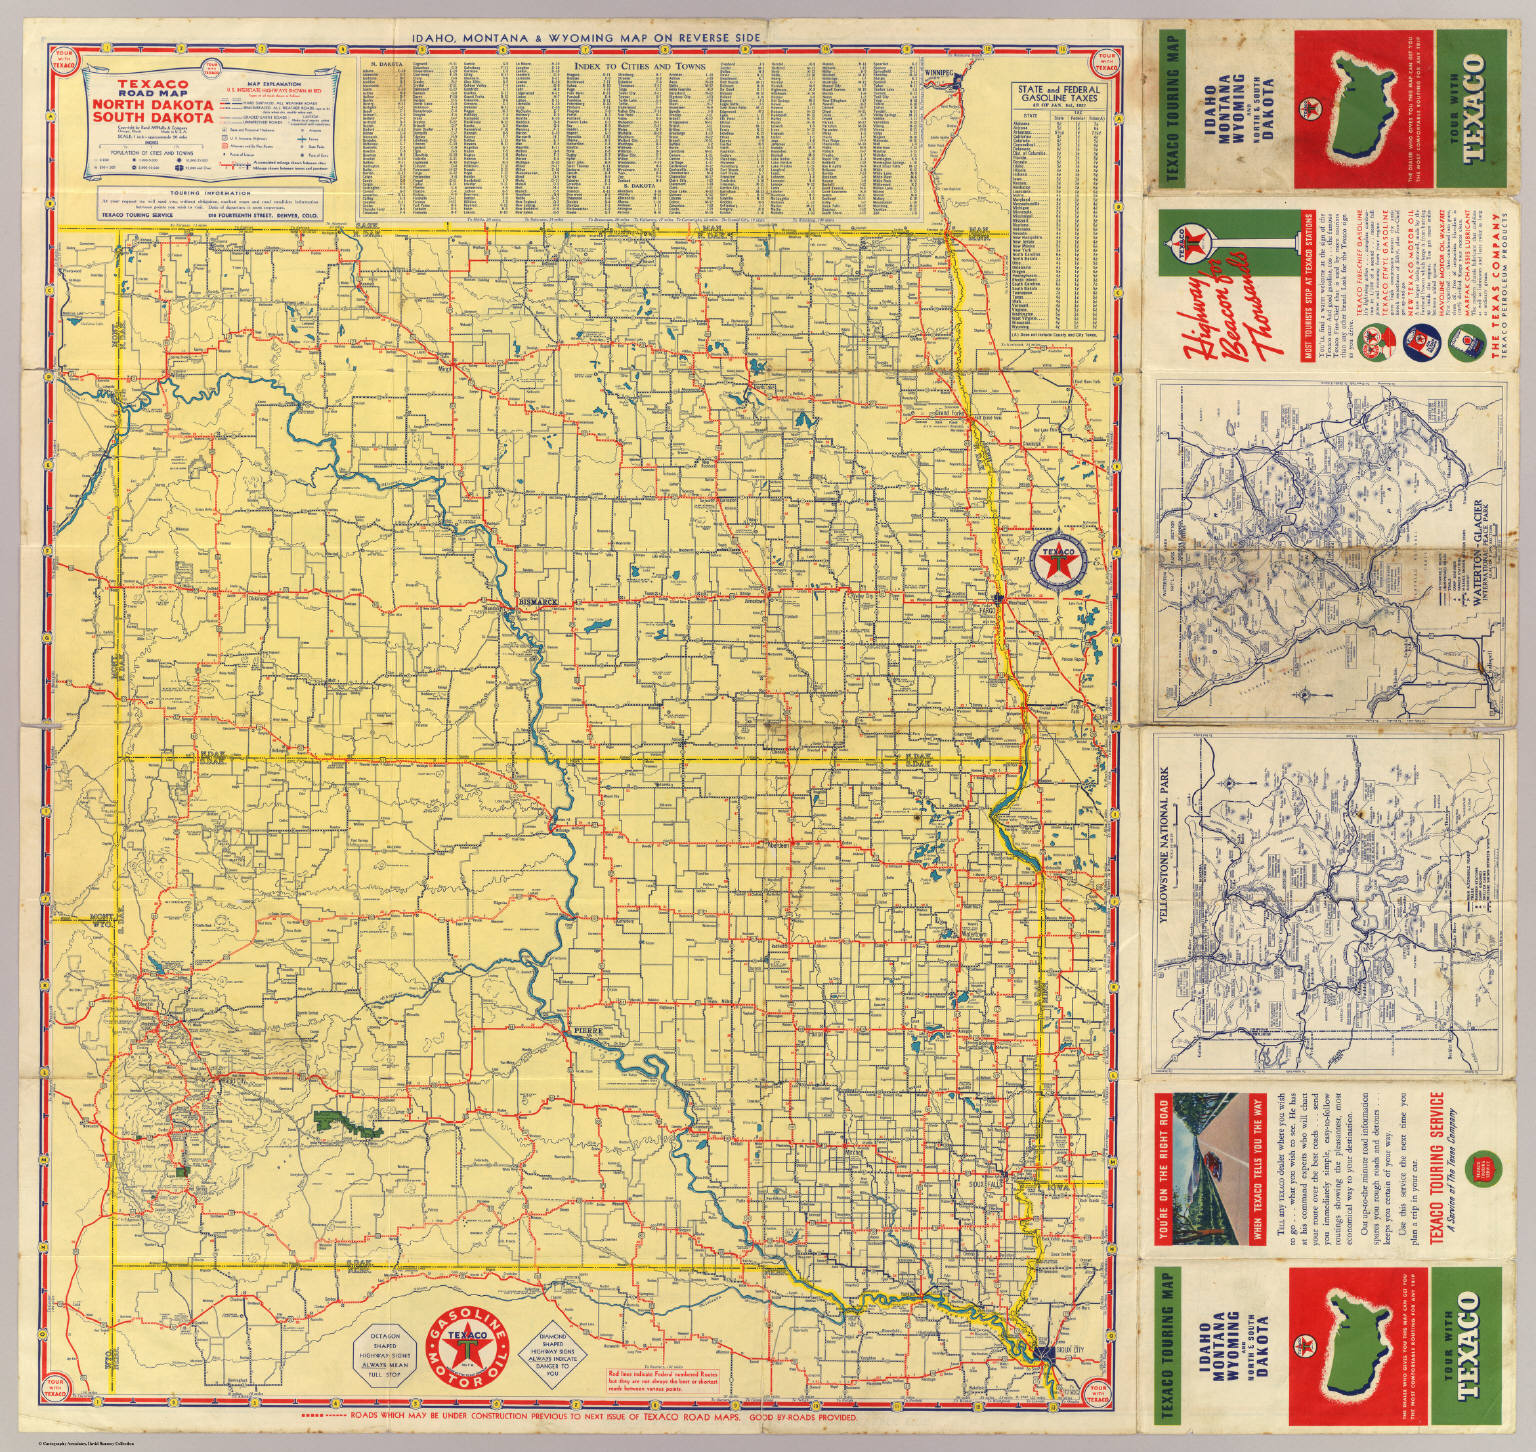 Road map N. & S. Dakota. - David Rumsey Historical Map Collection